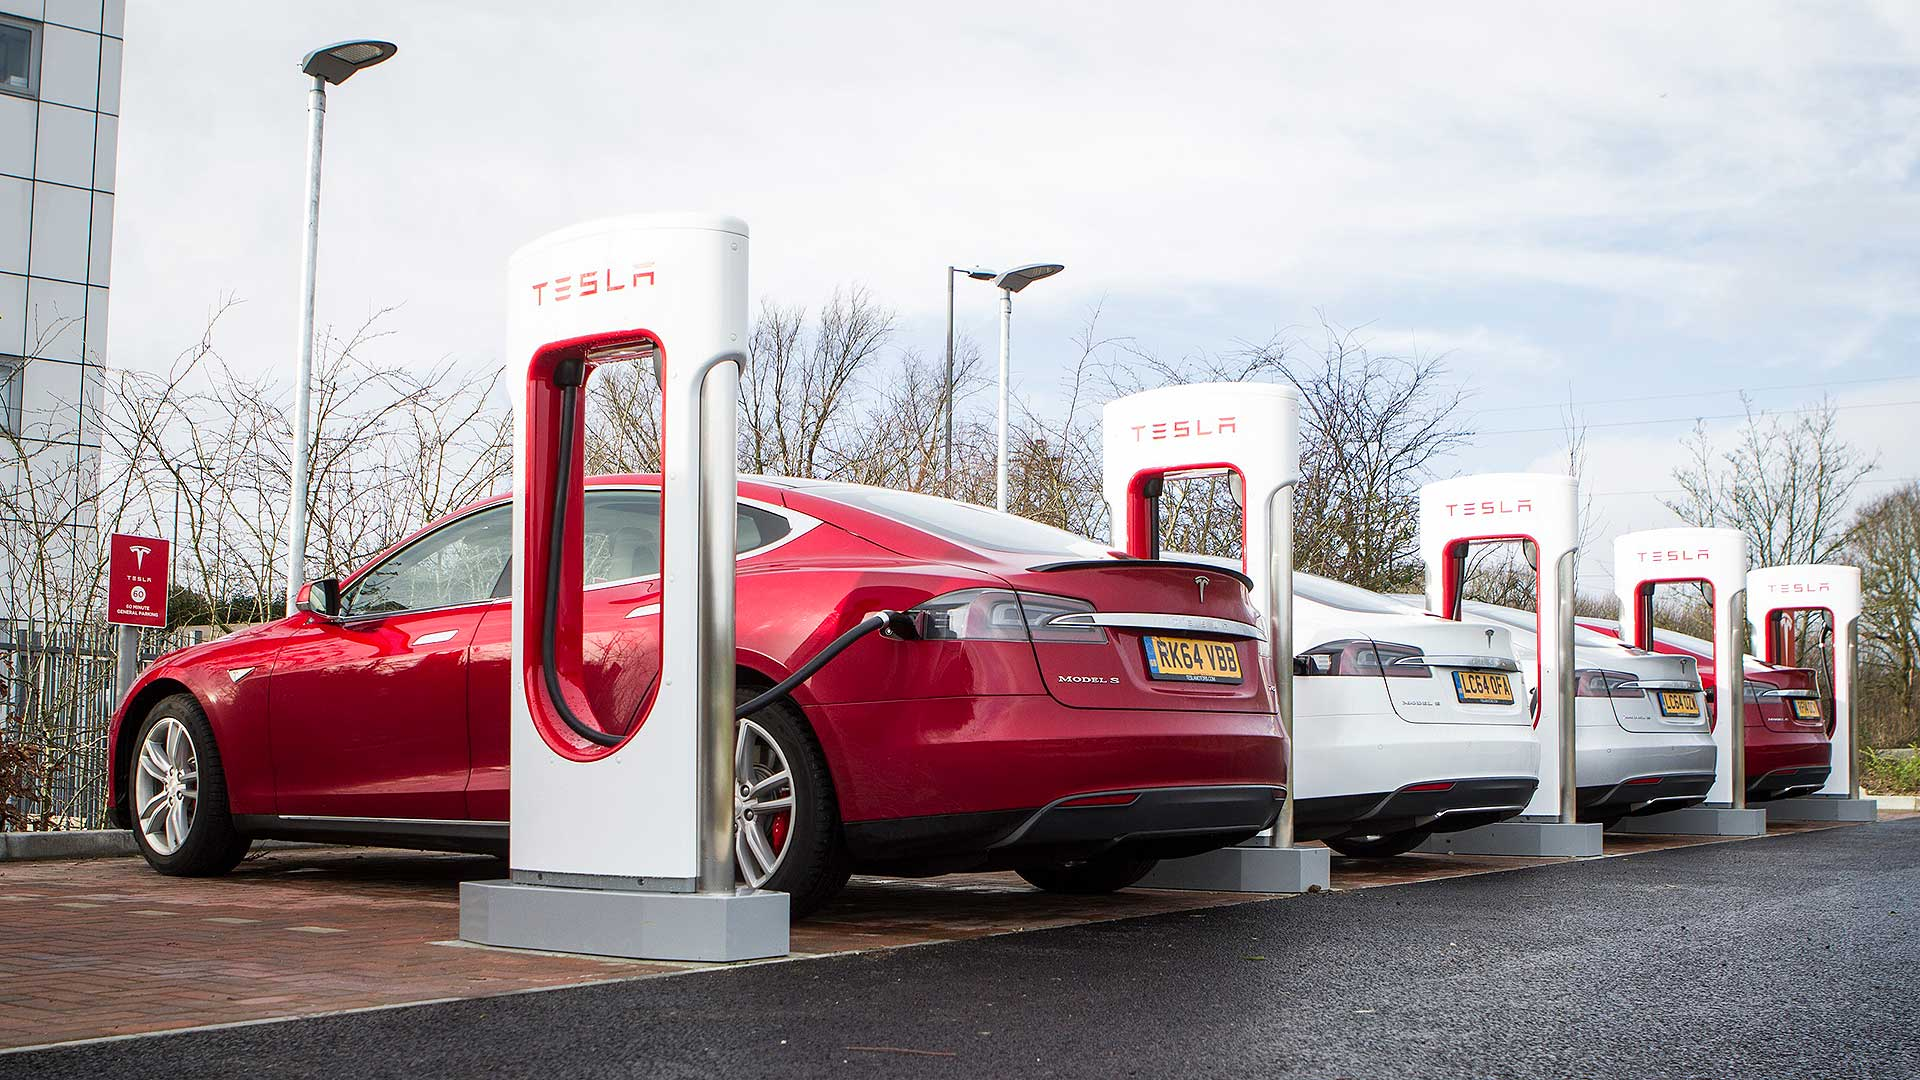 Tesla Superchargers in Britain